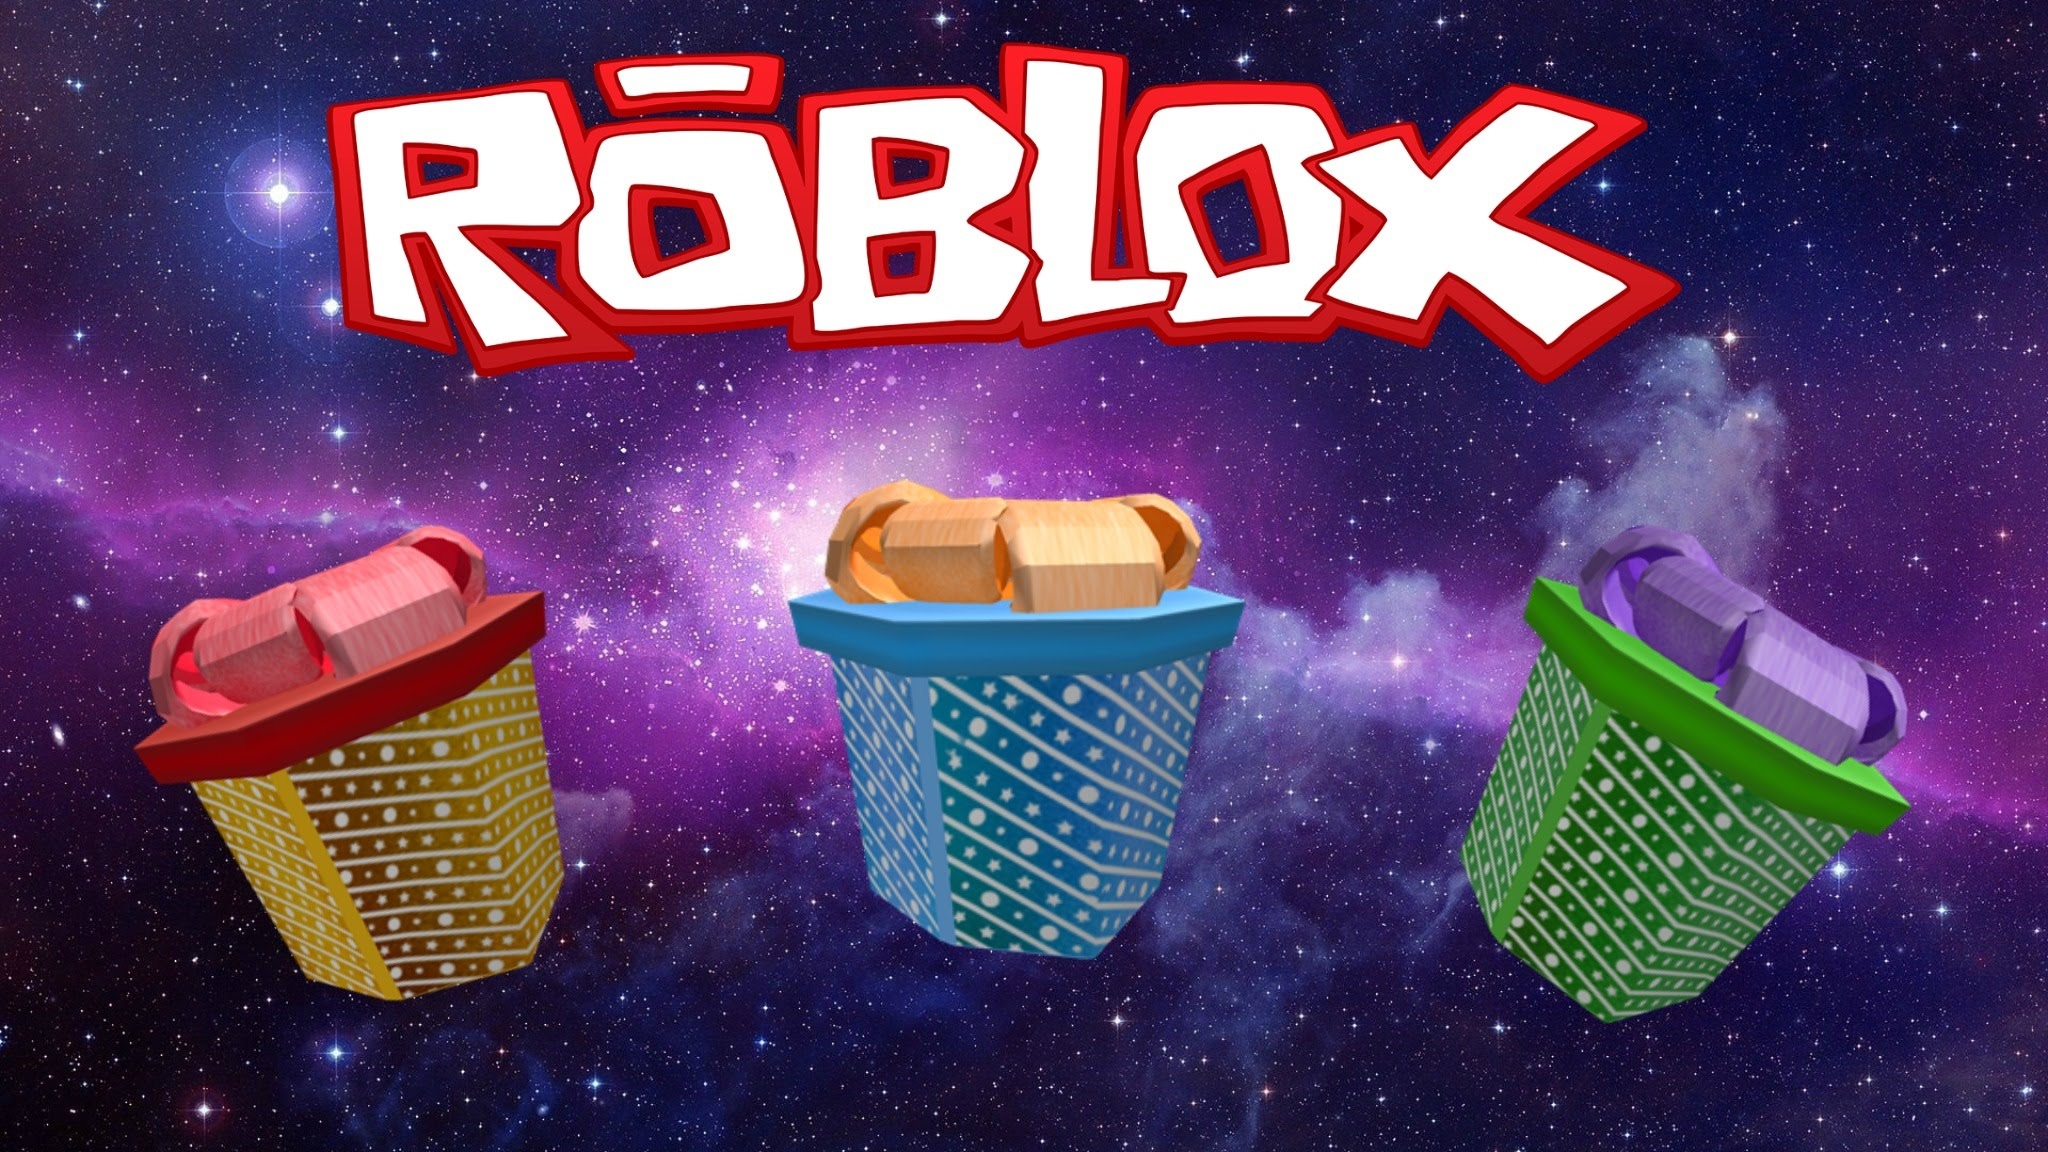 Roblox 2560x1440 Posted By Ethan Sellers